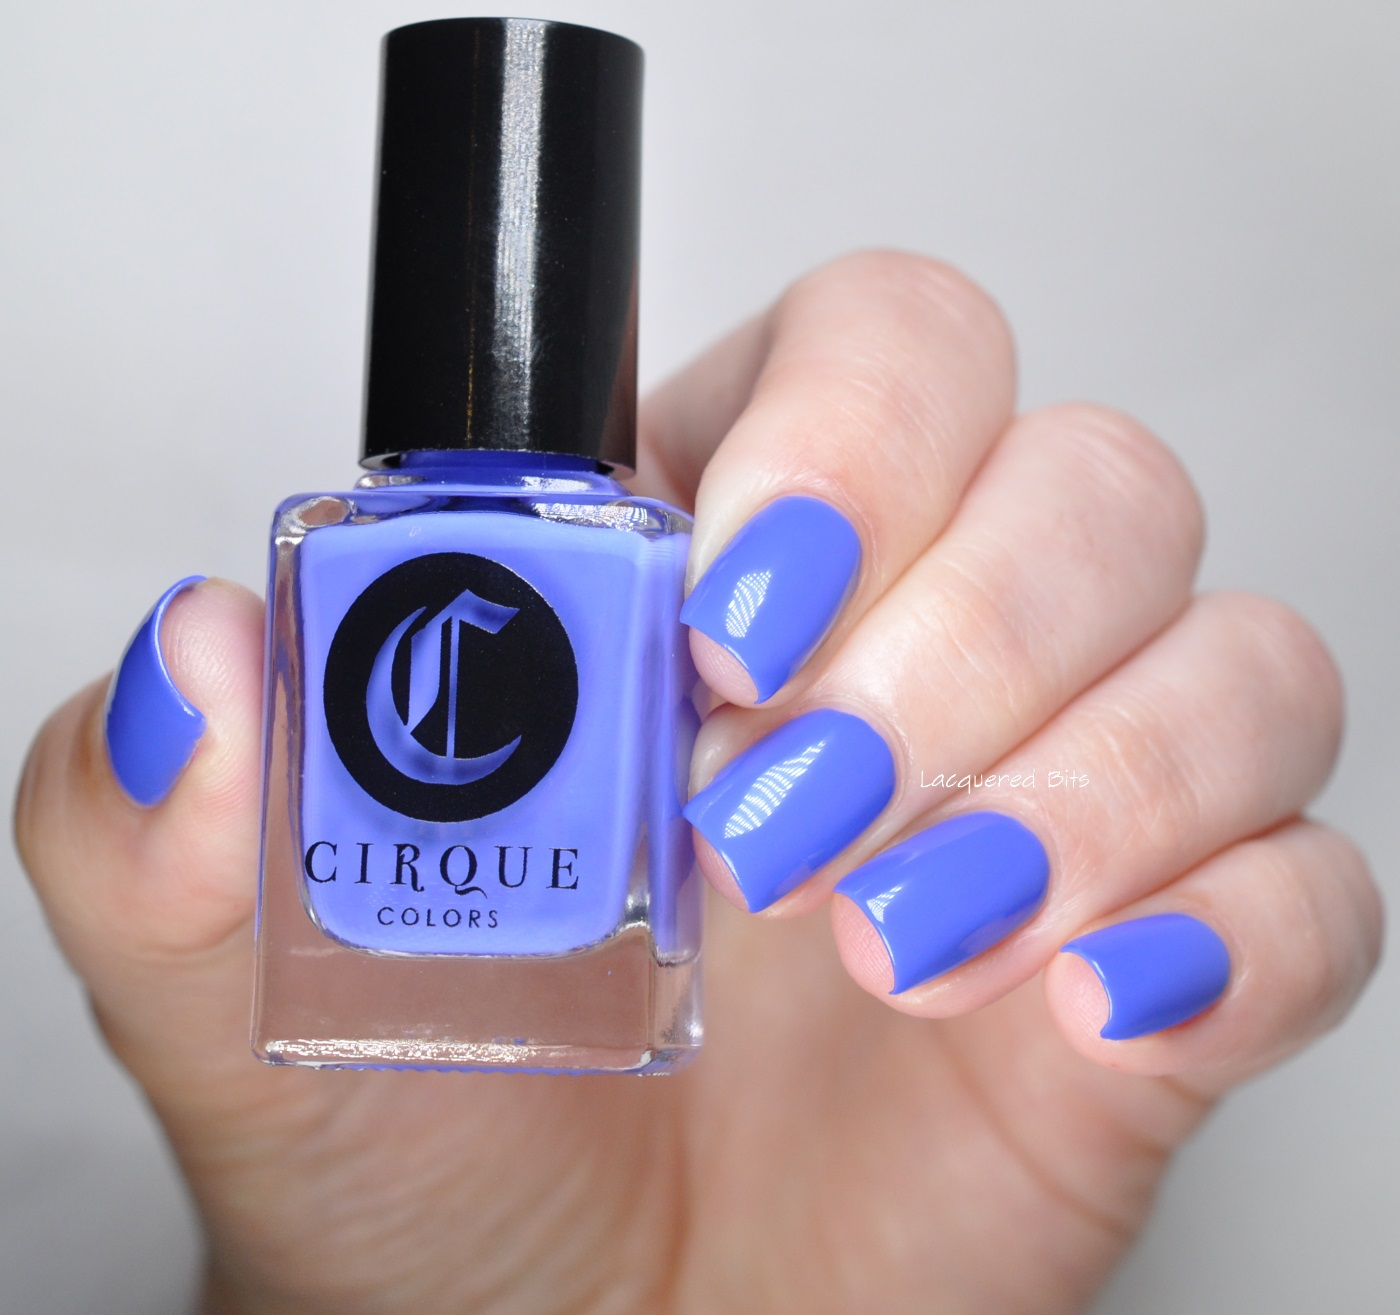 Rehab Cirque Colors Vice 2016 Collection